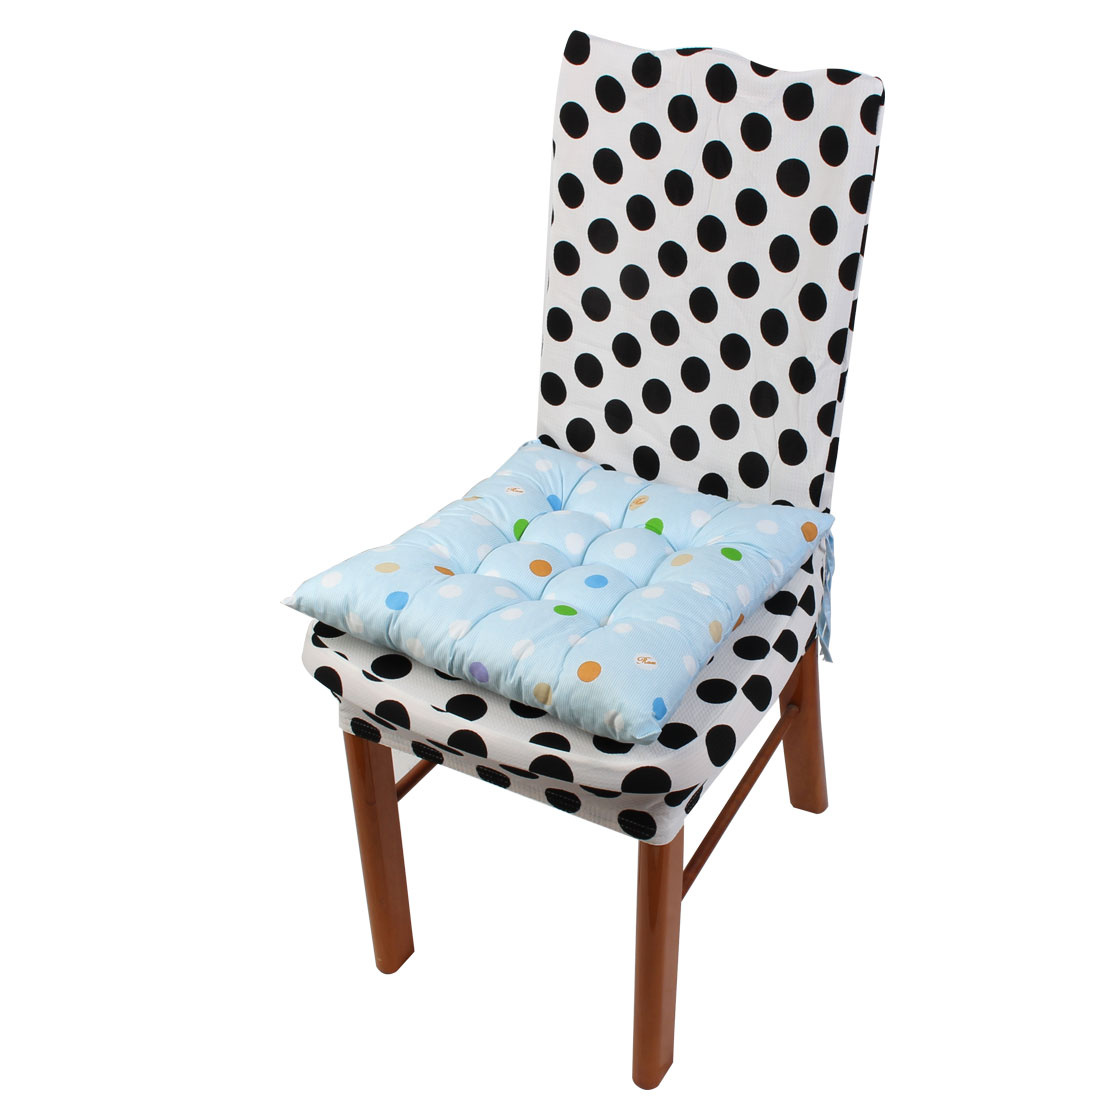 Household Polyester Blends Dots Print Keeping Warm Chair Cushion Pad Light Blue 40 x 40cm